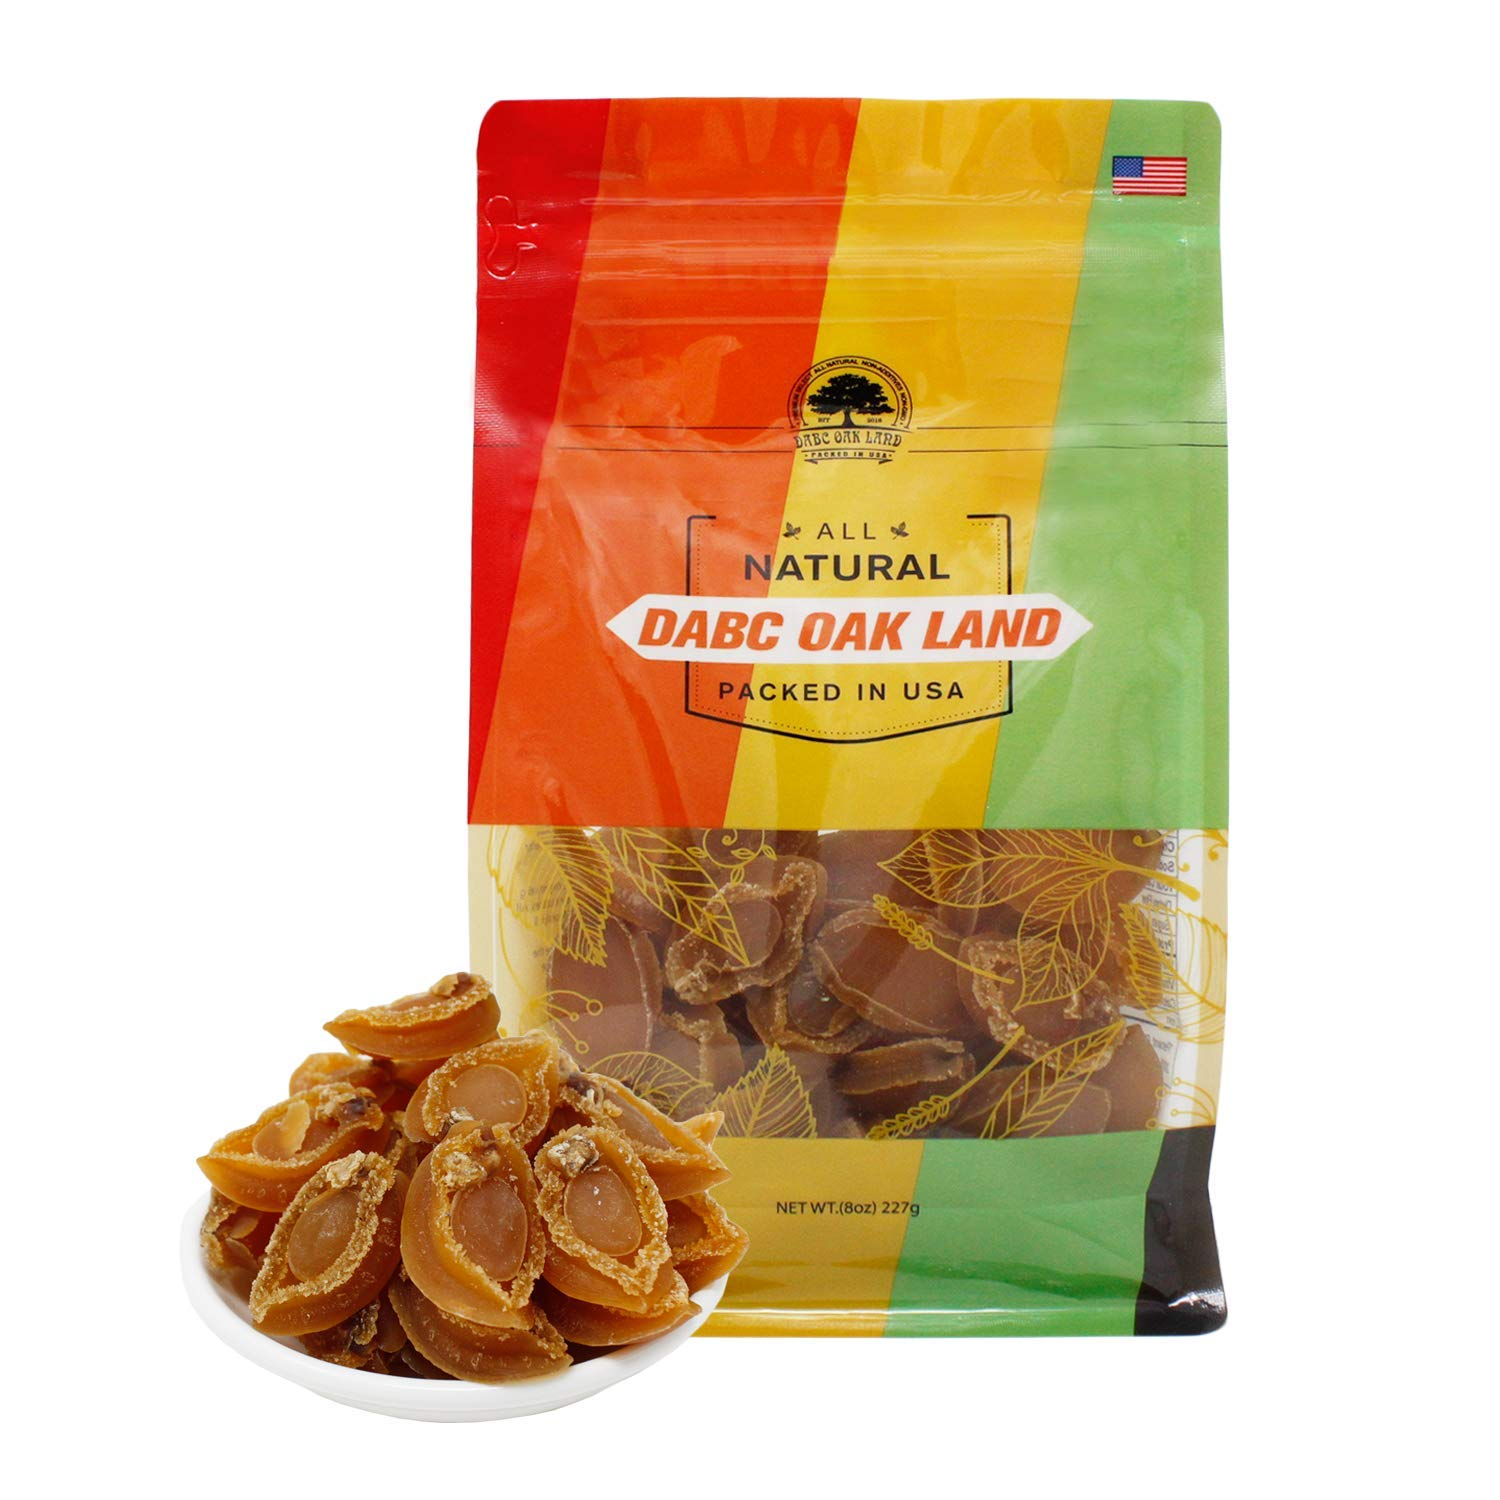 DABC OAK LAND Dried 8OZ=227g/Bag Abalone Baoyu,Dried Seafood Jerky & Dried Meats 实惠款鲍鱼仔 70~75pcs/8OZ MA 083# Bag